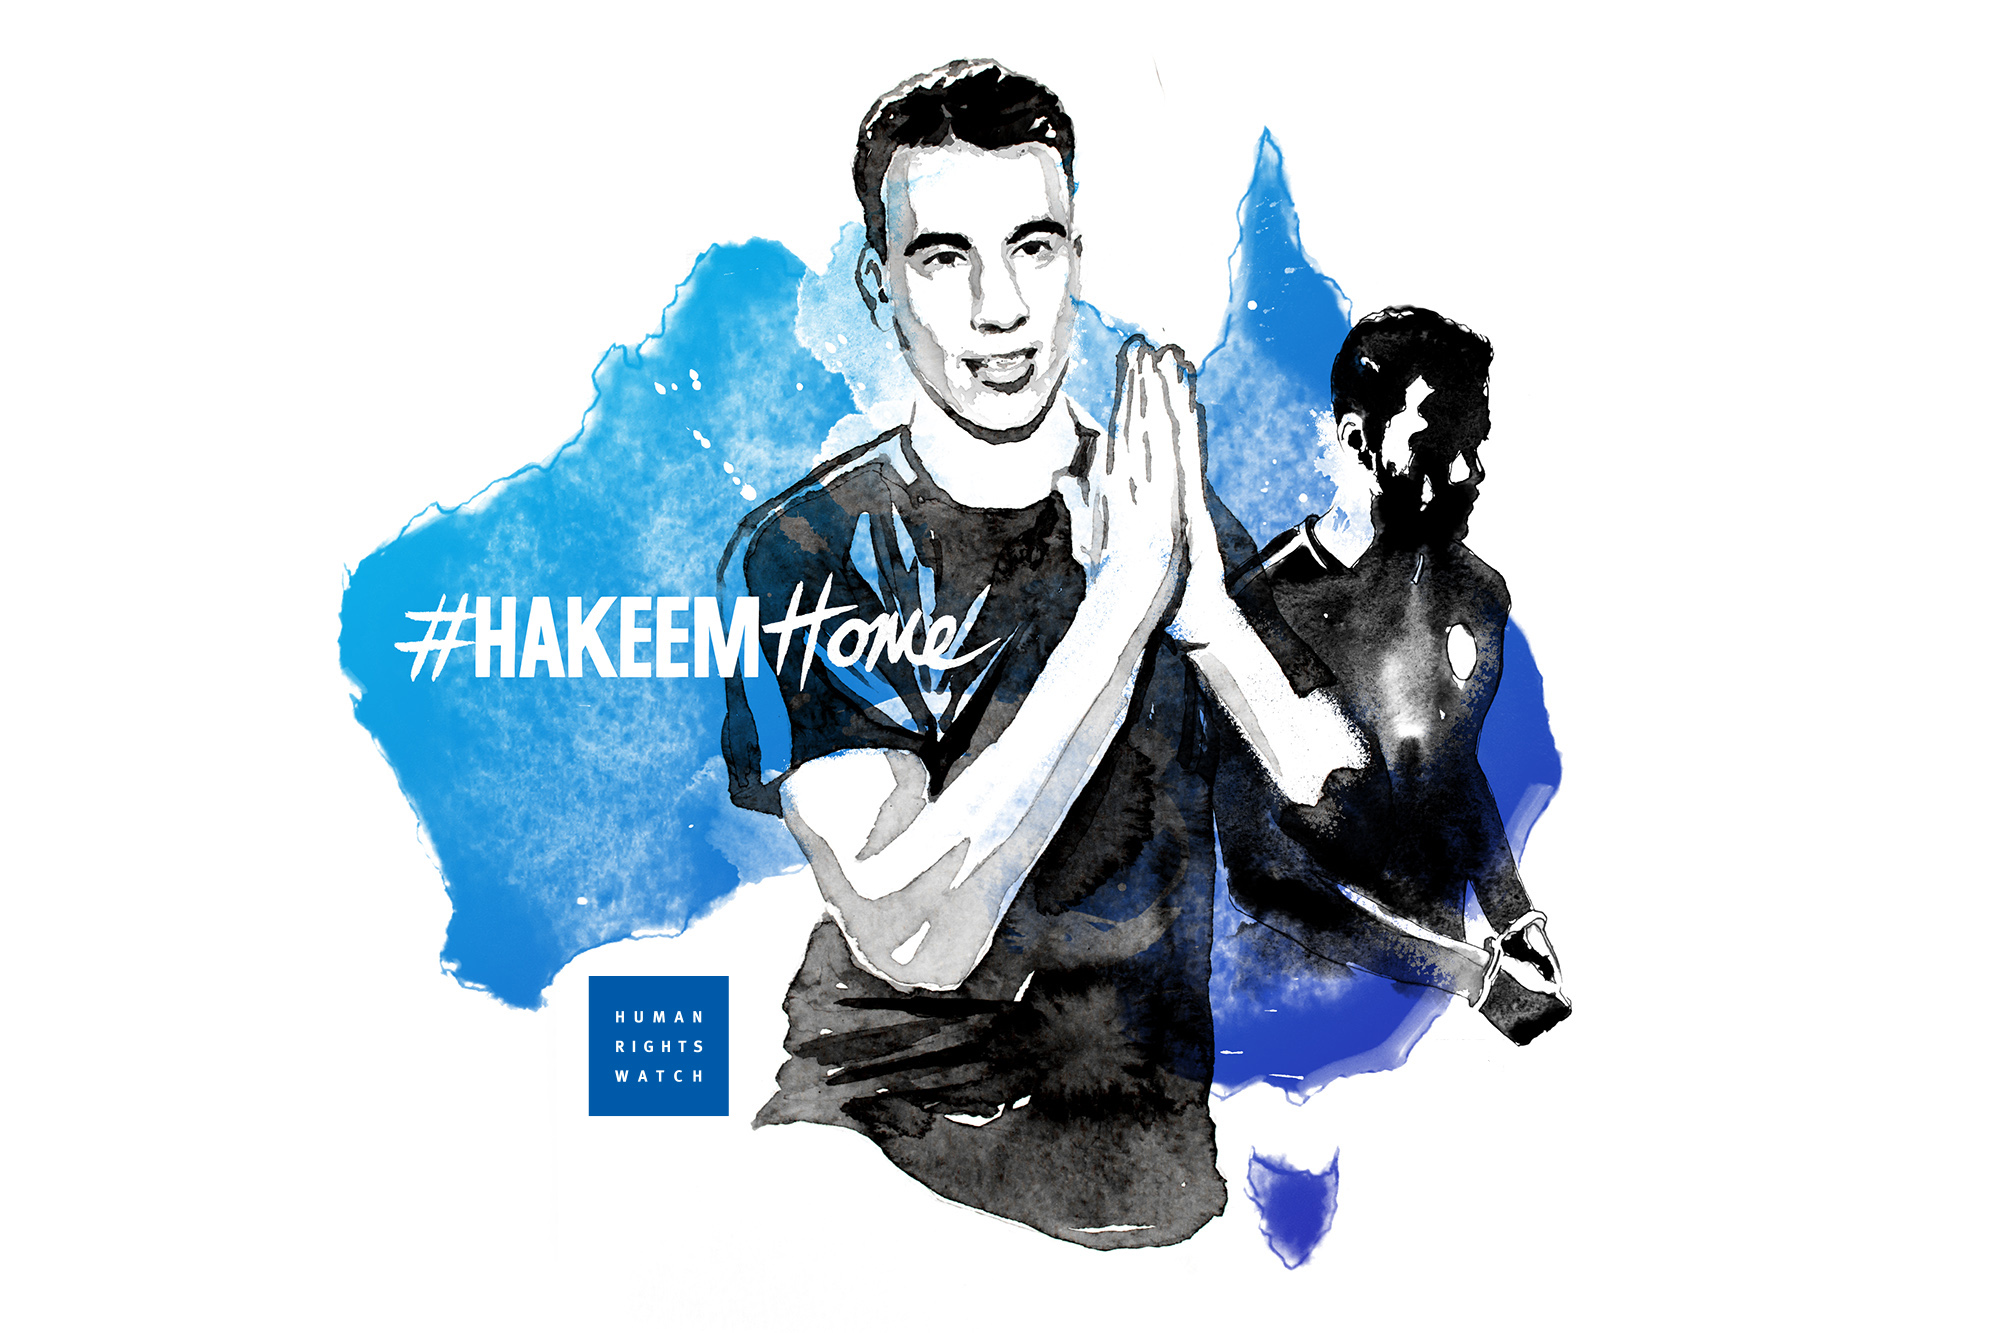 Hakeem_Home-Feb12-Master-HRW.jpg